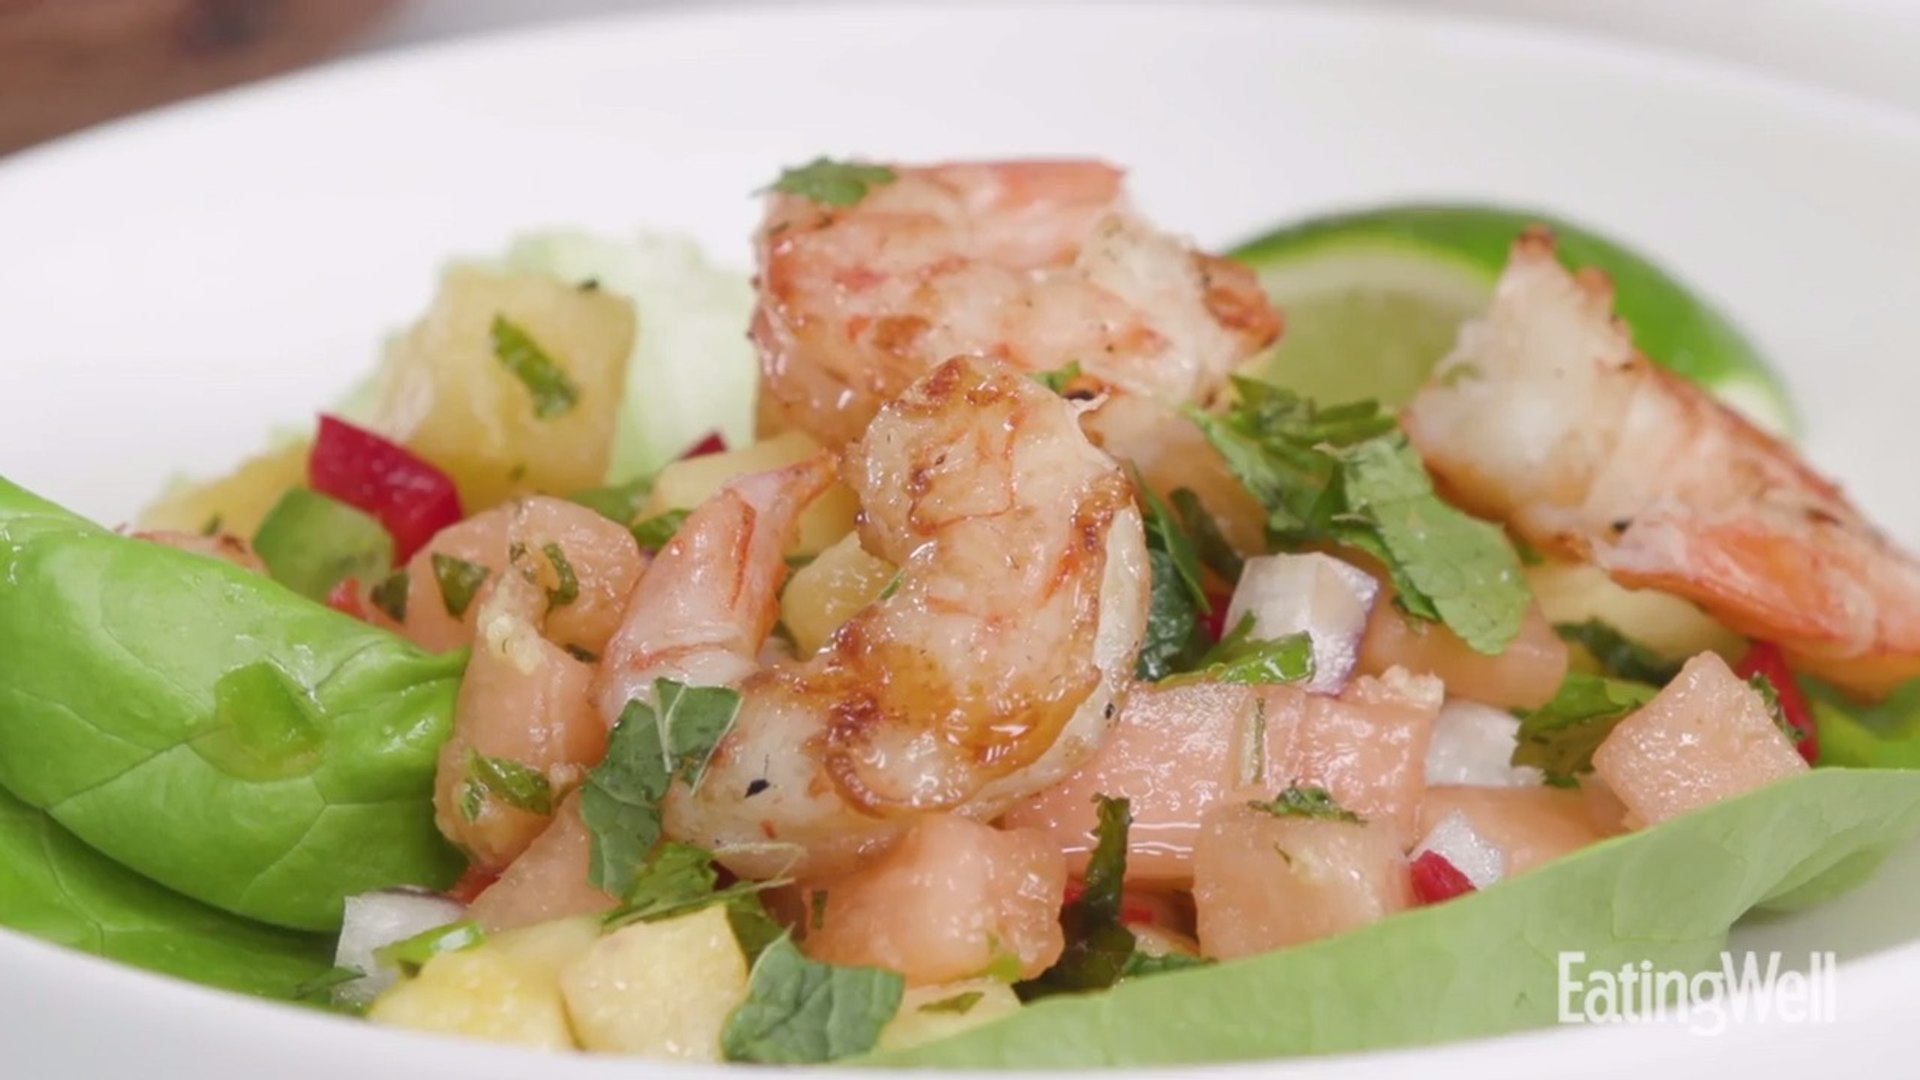 How to Make Grilled Shrimp With Pineapple-Melon Salsa